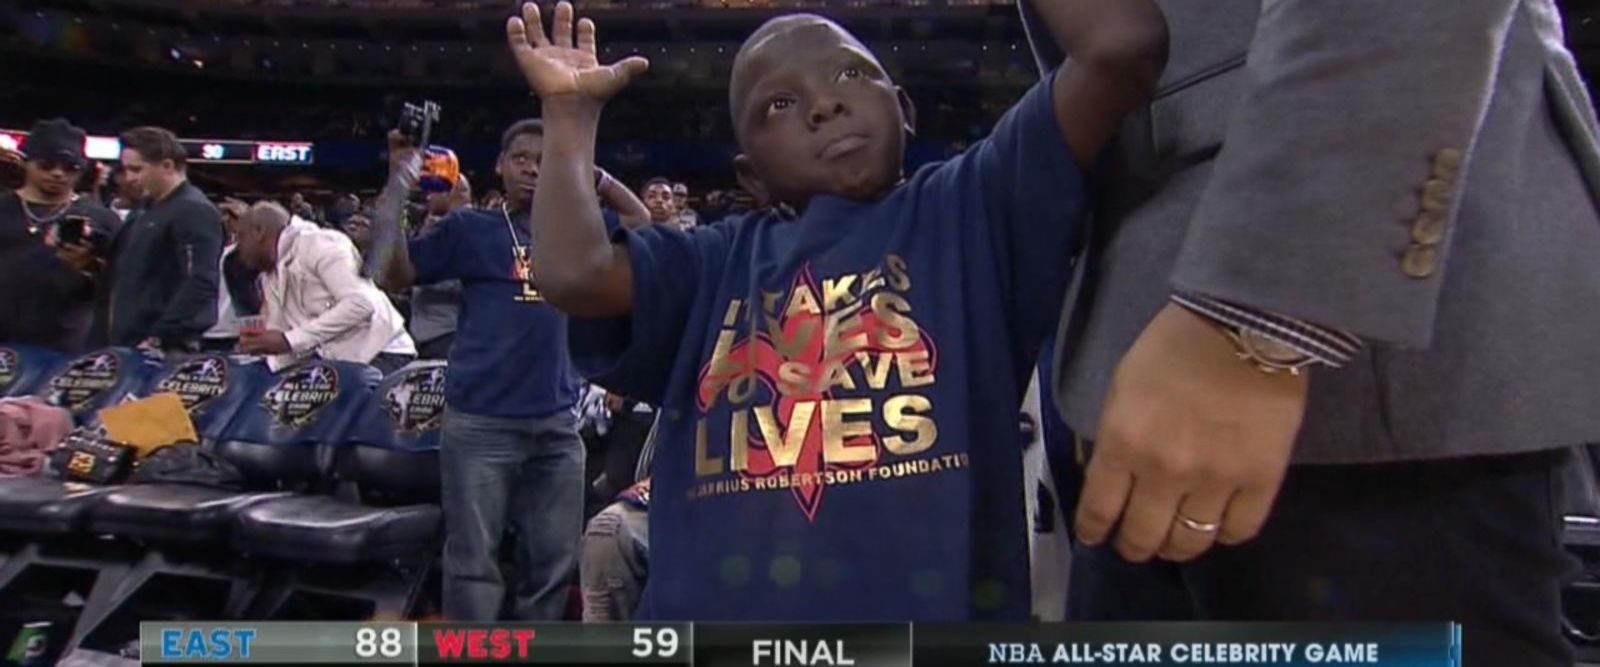 VIDEO: Inside NBA fan Jarrius Robertson's slam dunk moment